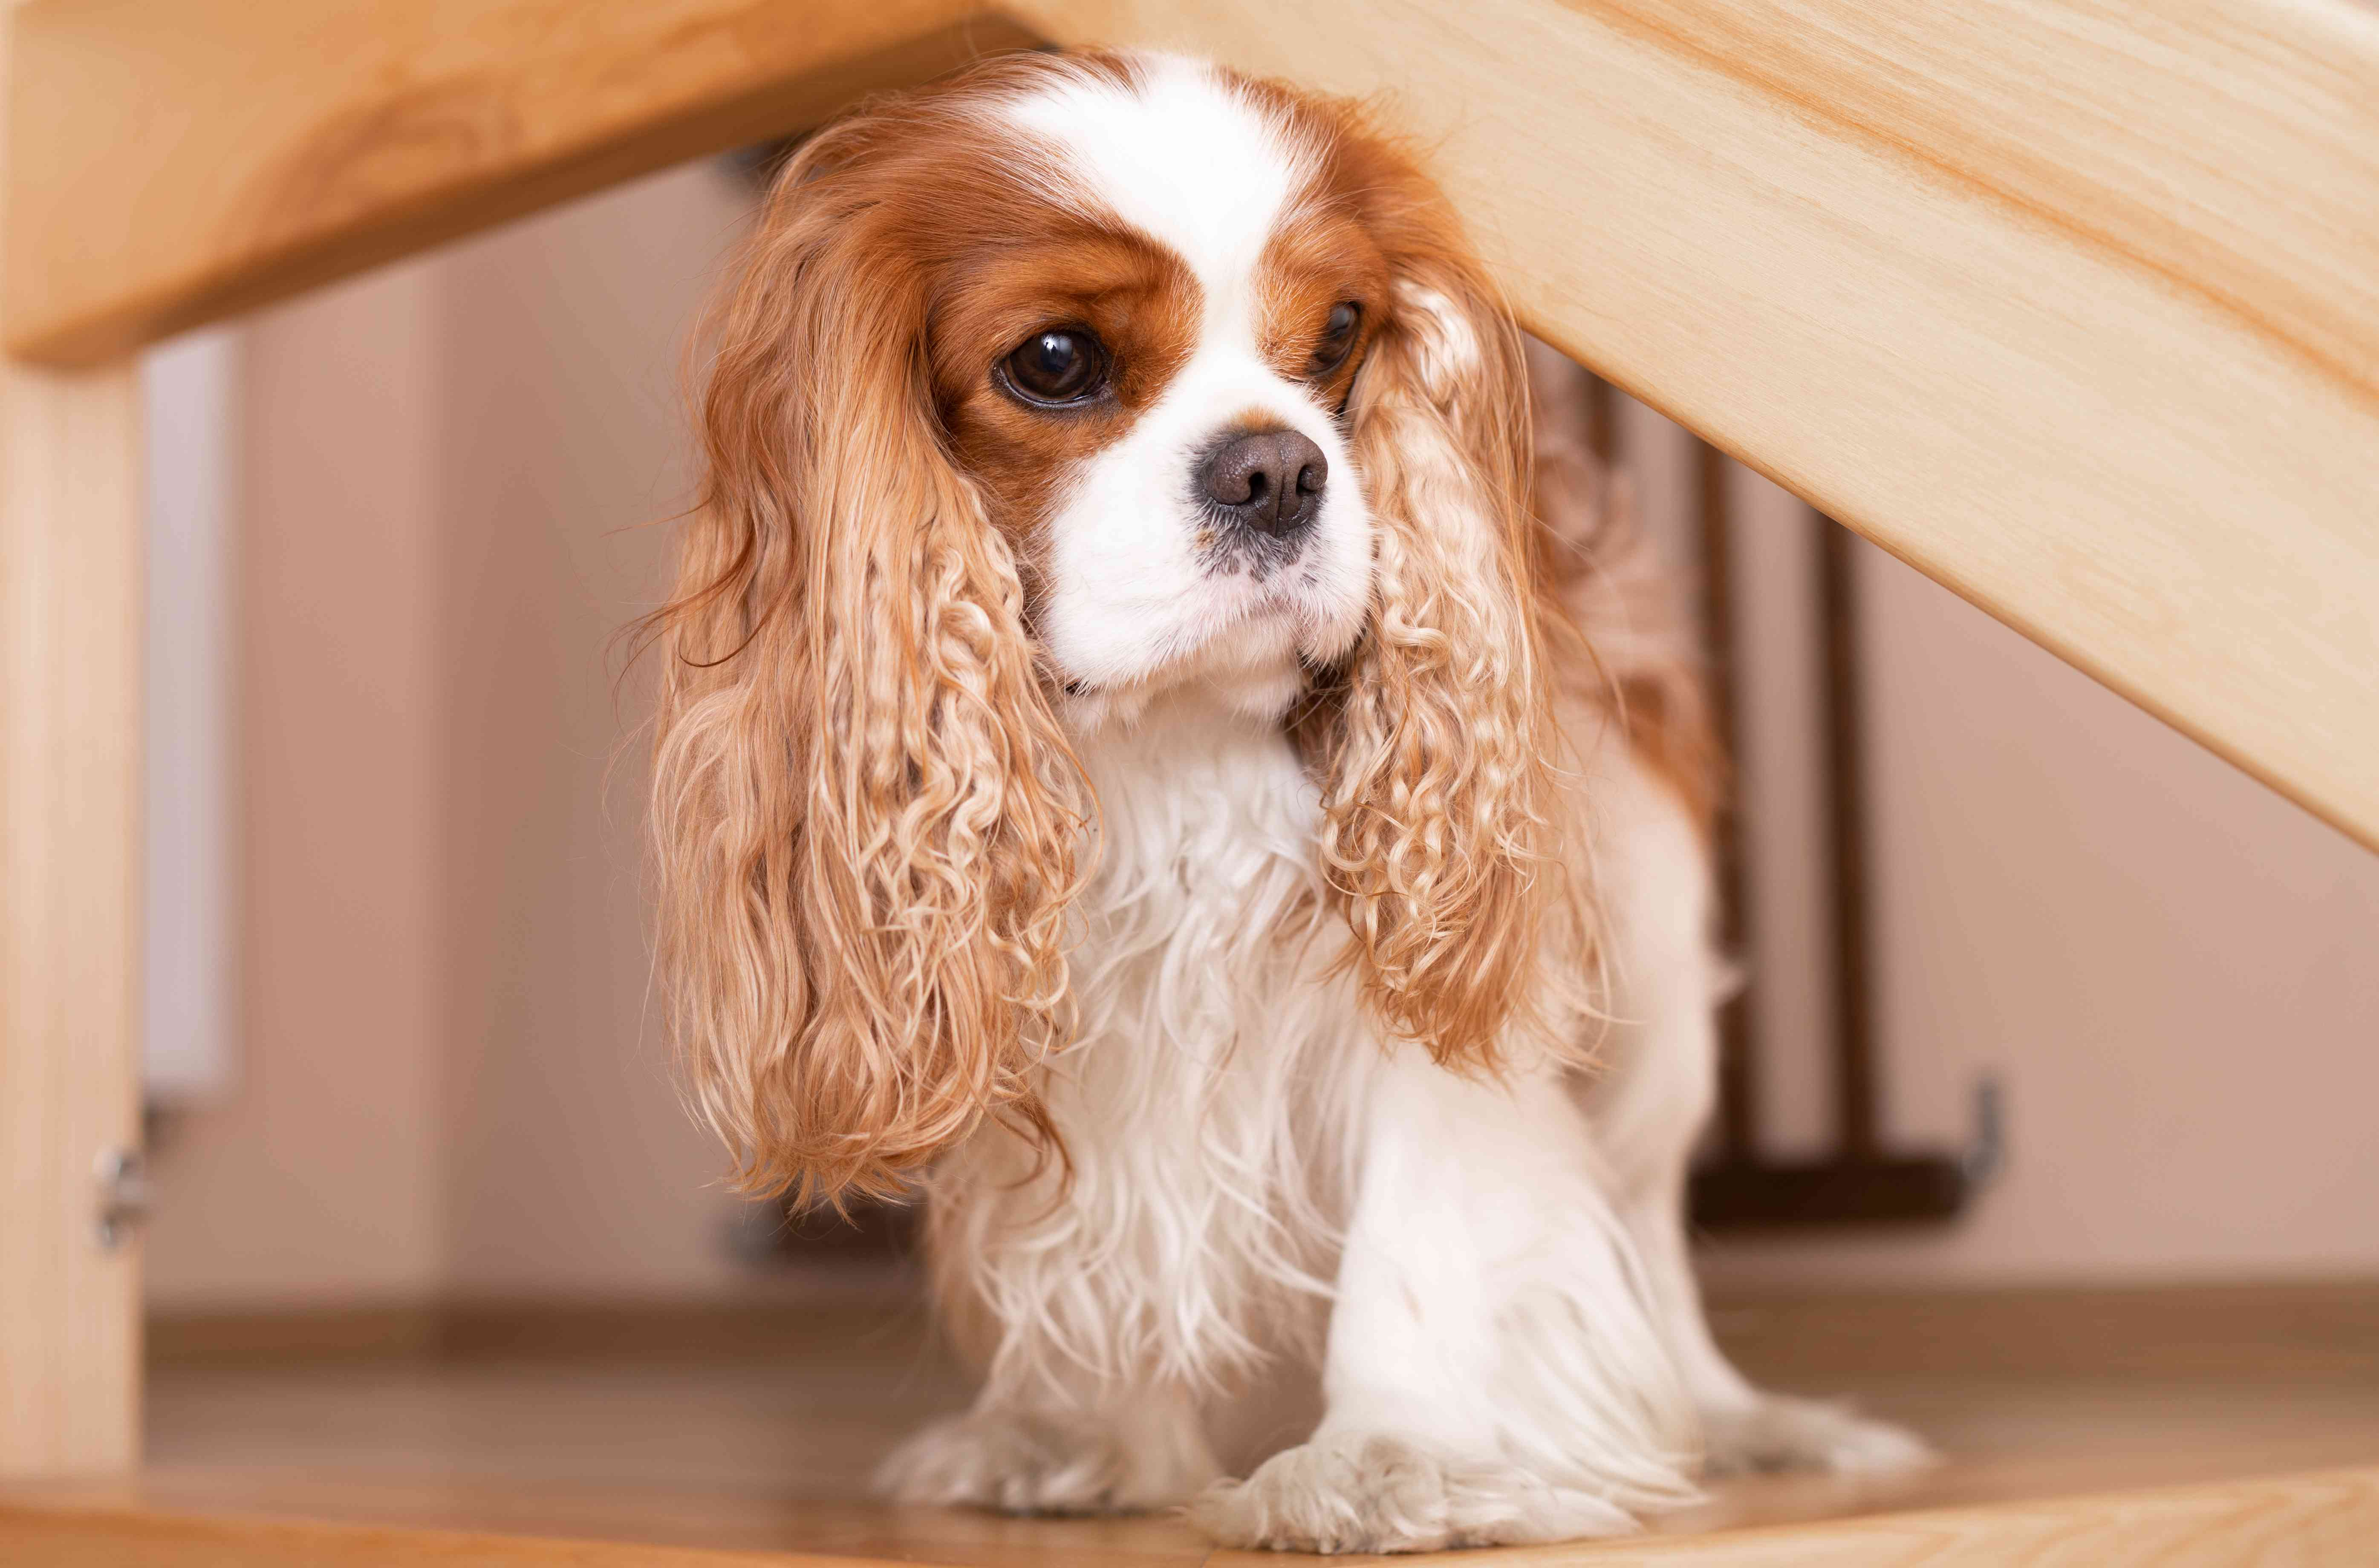 The cute and serious Cavalier King Charles Spaniel is hunting in his house. The dog wrinkled its muzzle funny and prepared to hunt. Close-up photo.